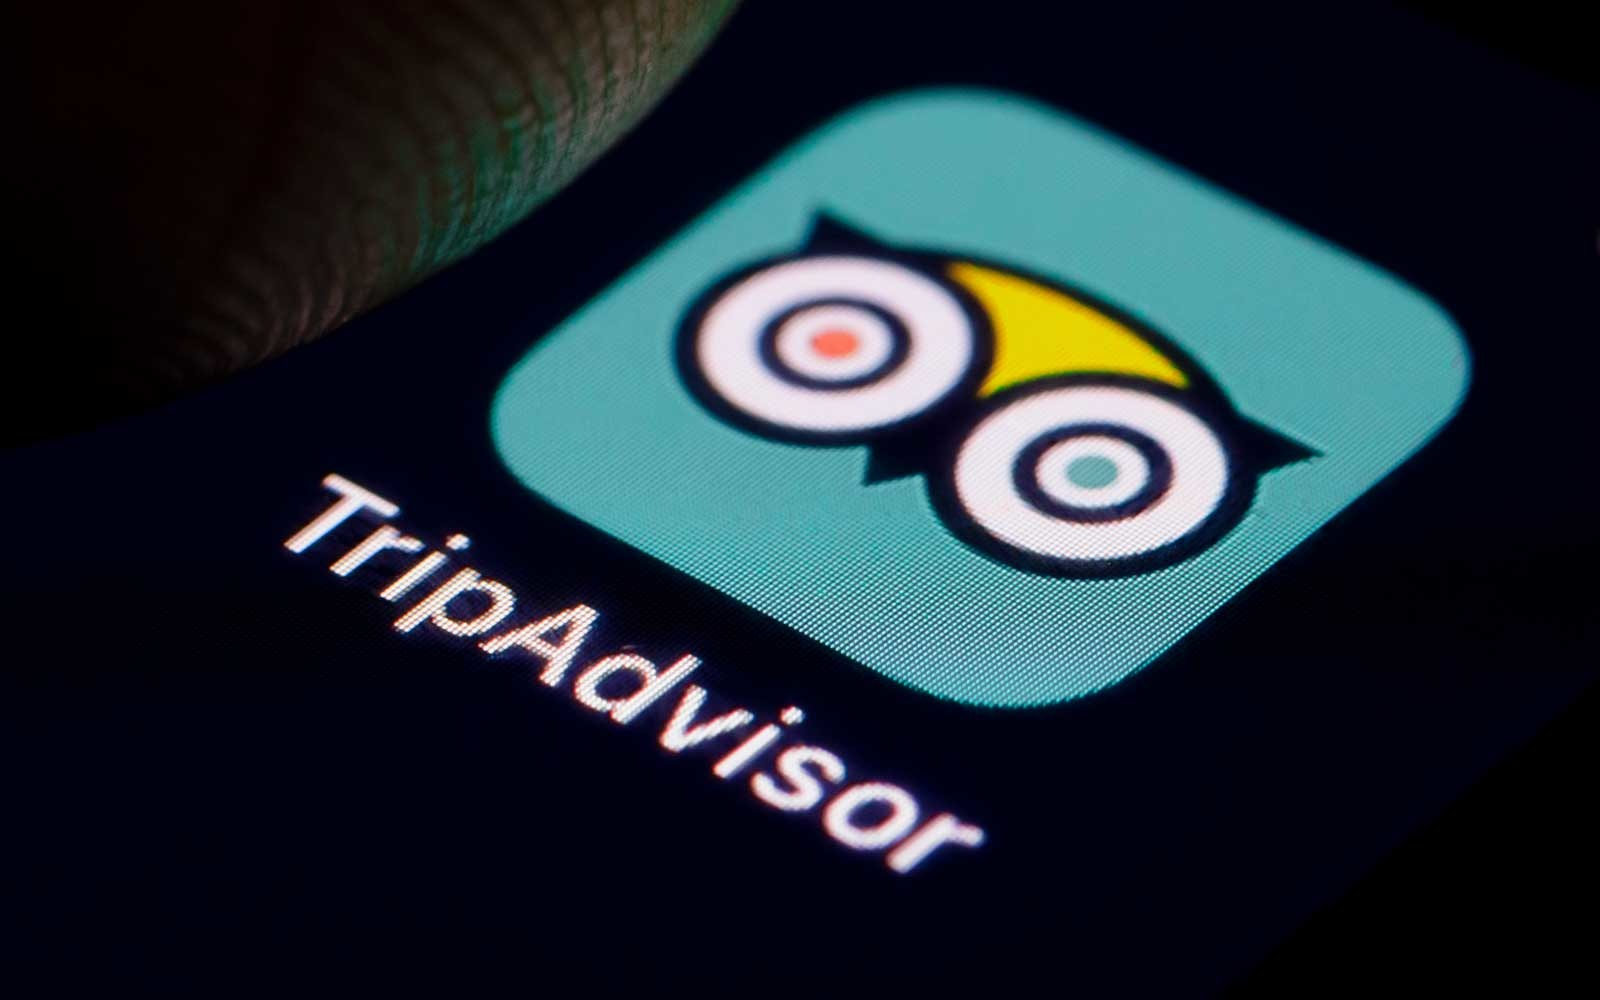 Here's what TripAdvisor has to say about claims it's publishing fake reviews